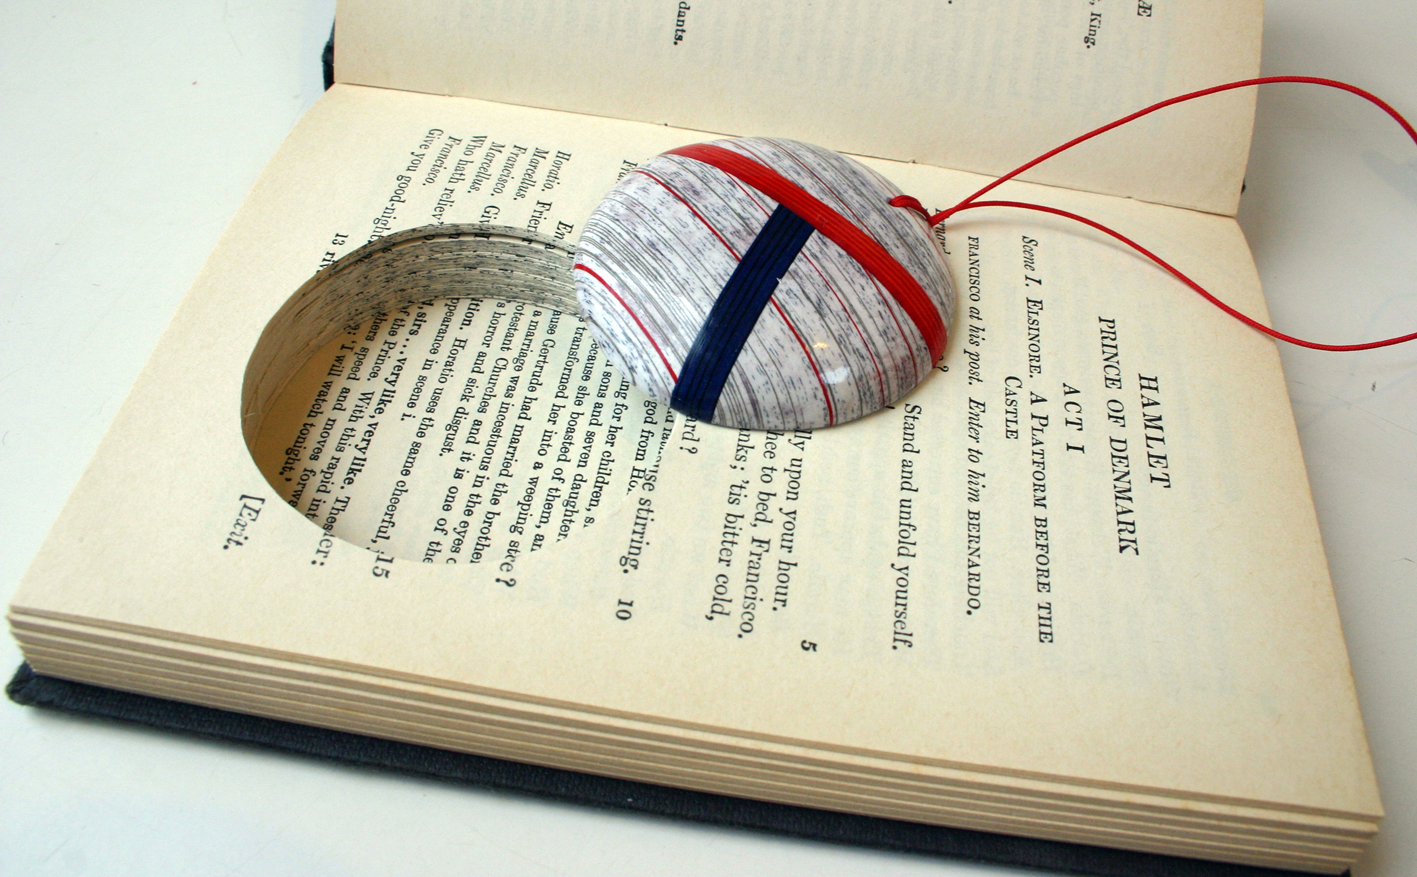 Stunning Jewelry Crafted from Vintage Books